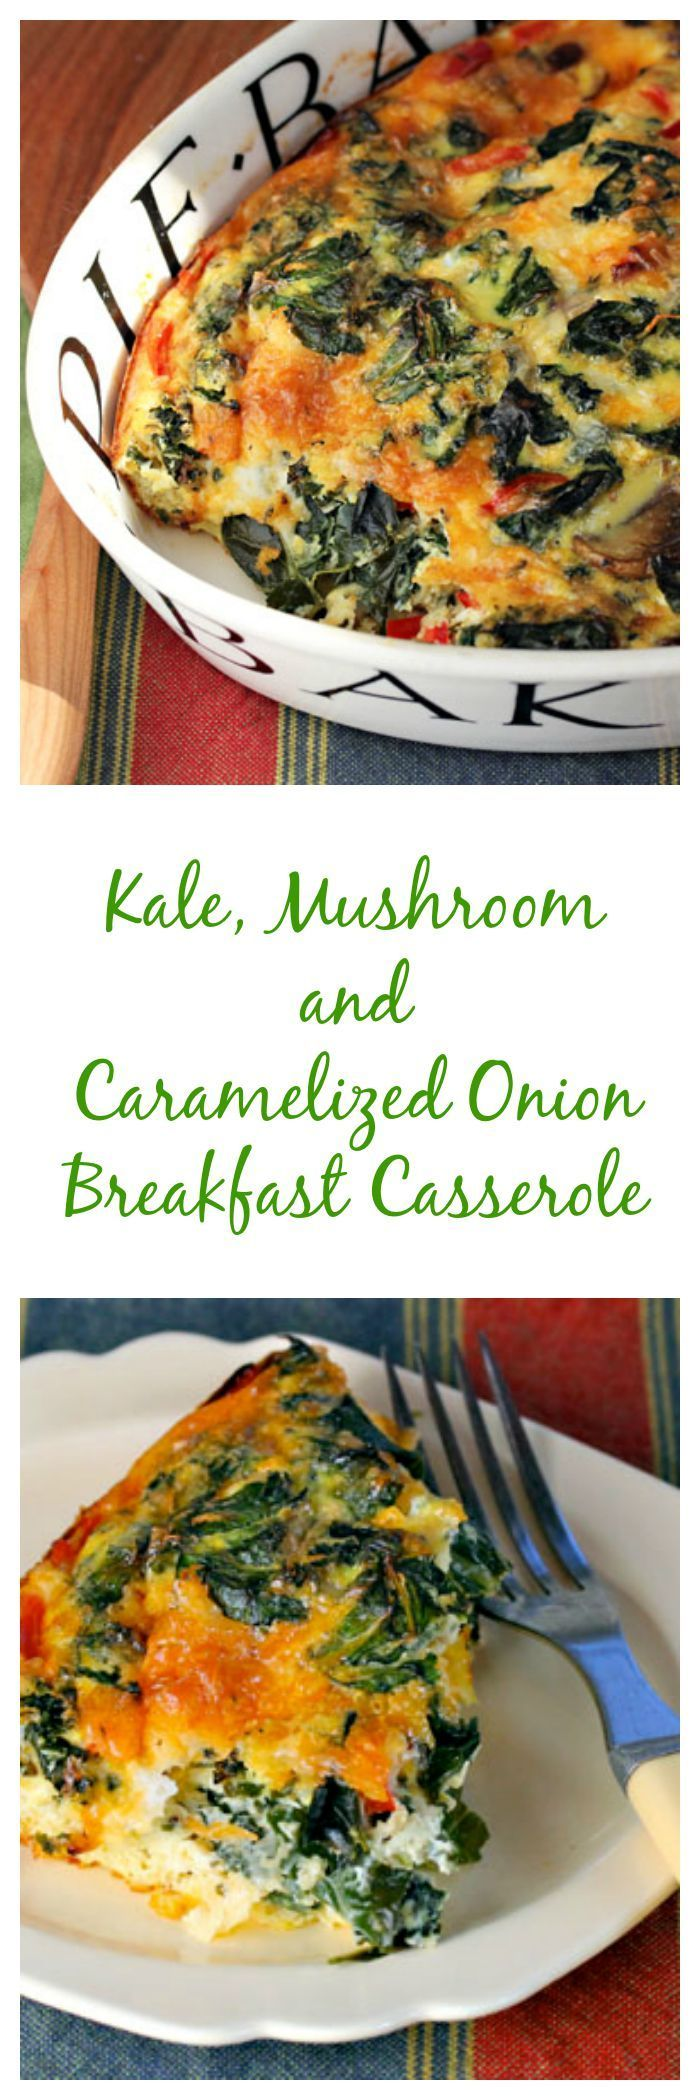 awesome Recipe for kale, mushroom and caramelized onion breakfast casserole {vegetarian, gluten-free}by http://dezdemooncooking.gdn